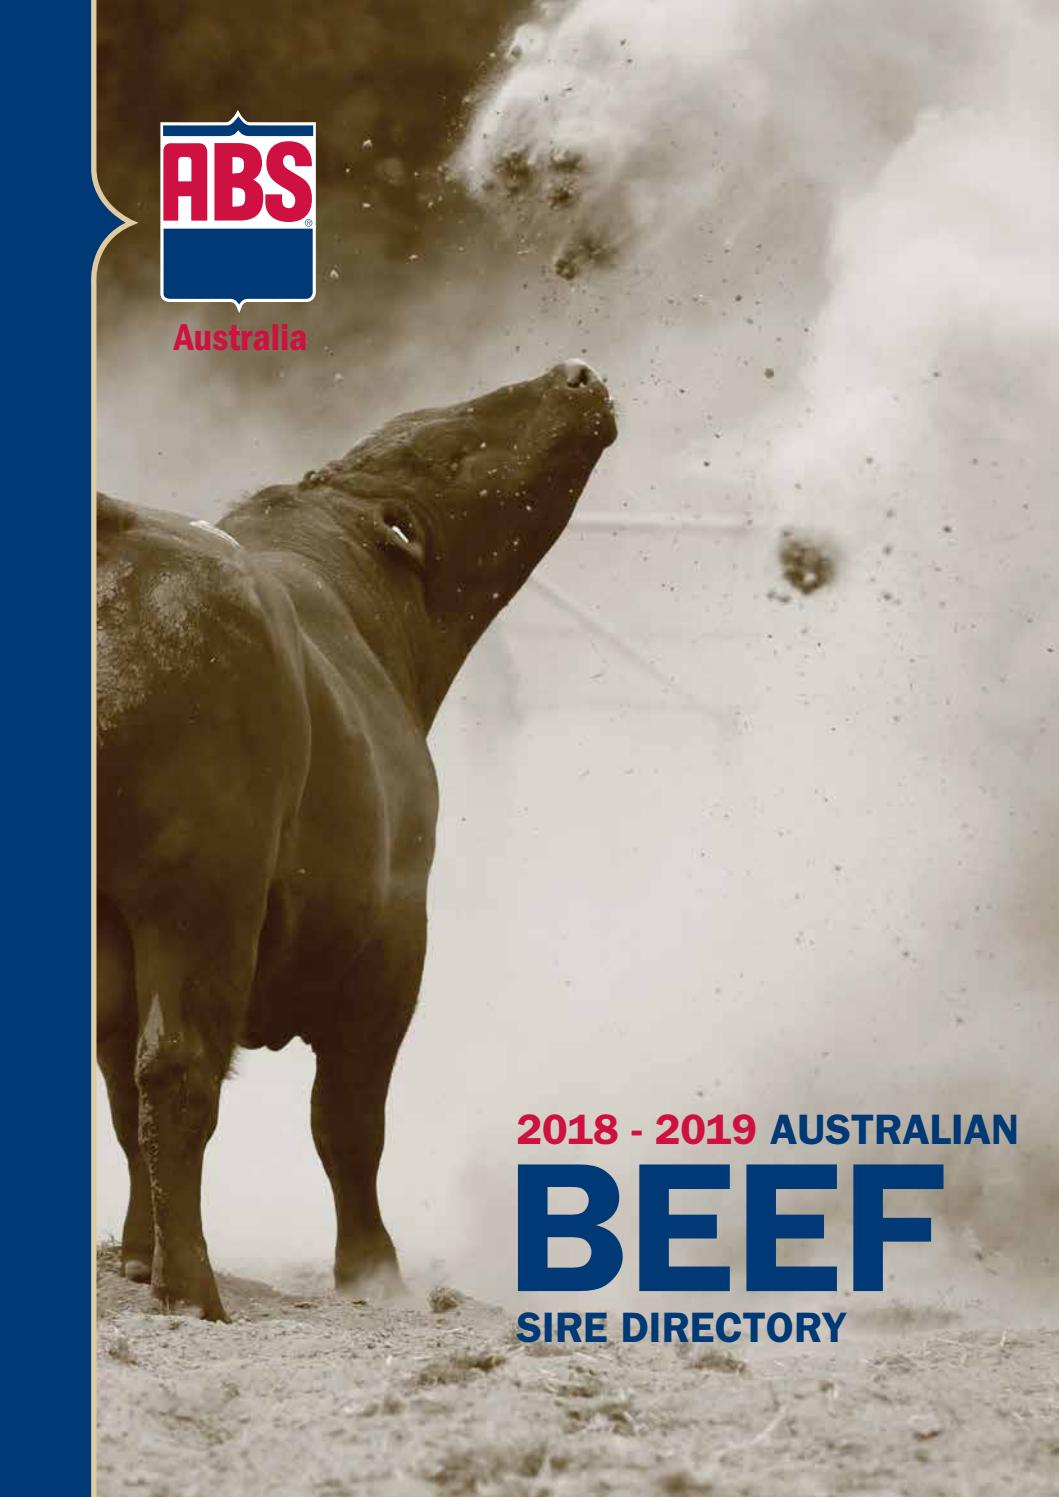 9c37d58ed8d40 ABS Australia 2018-19 Beef Sire Directory by ABS Global, Inc. - issuu